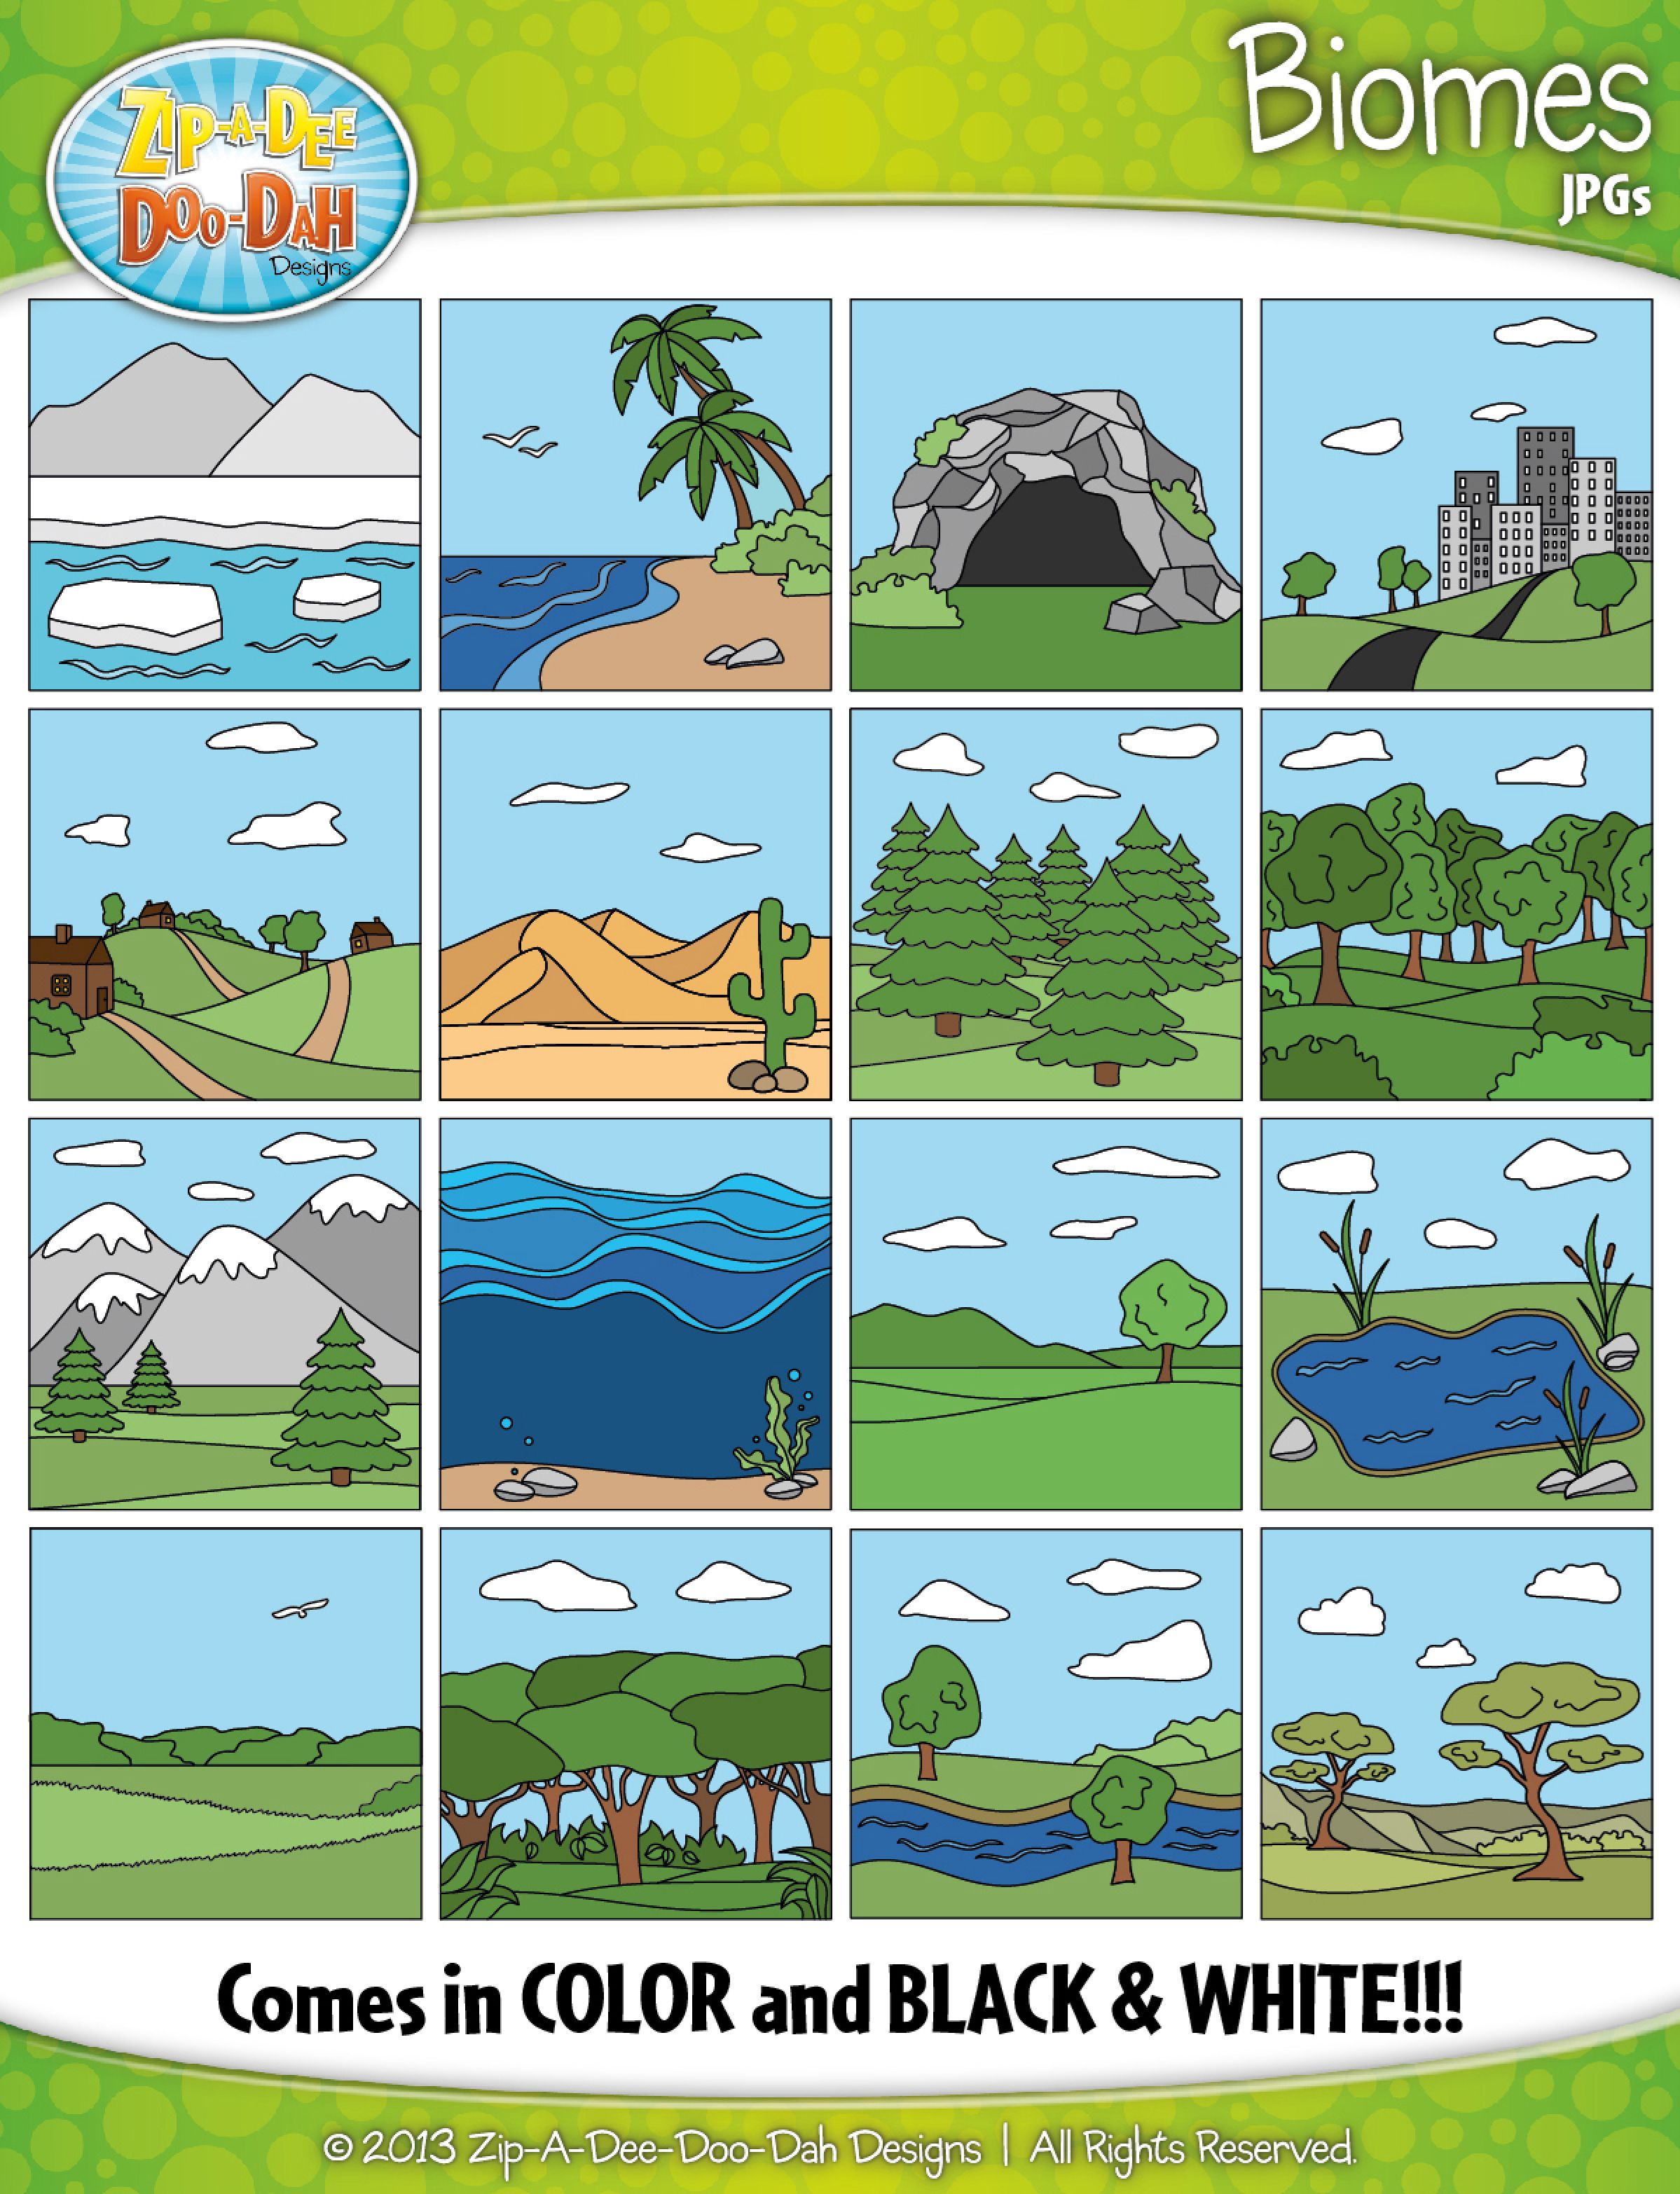 Biomes Ecosystems Clipart Zip A Dee Doo Dah Designs